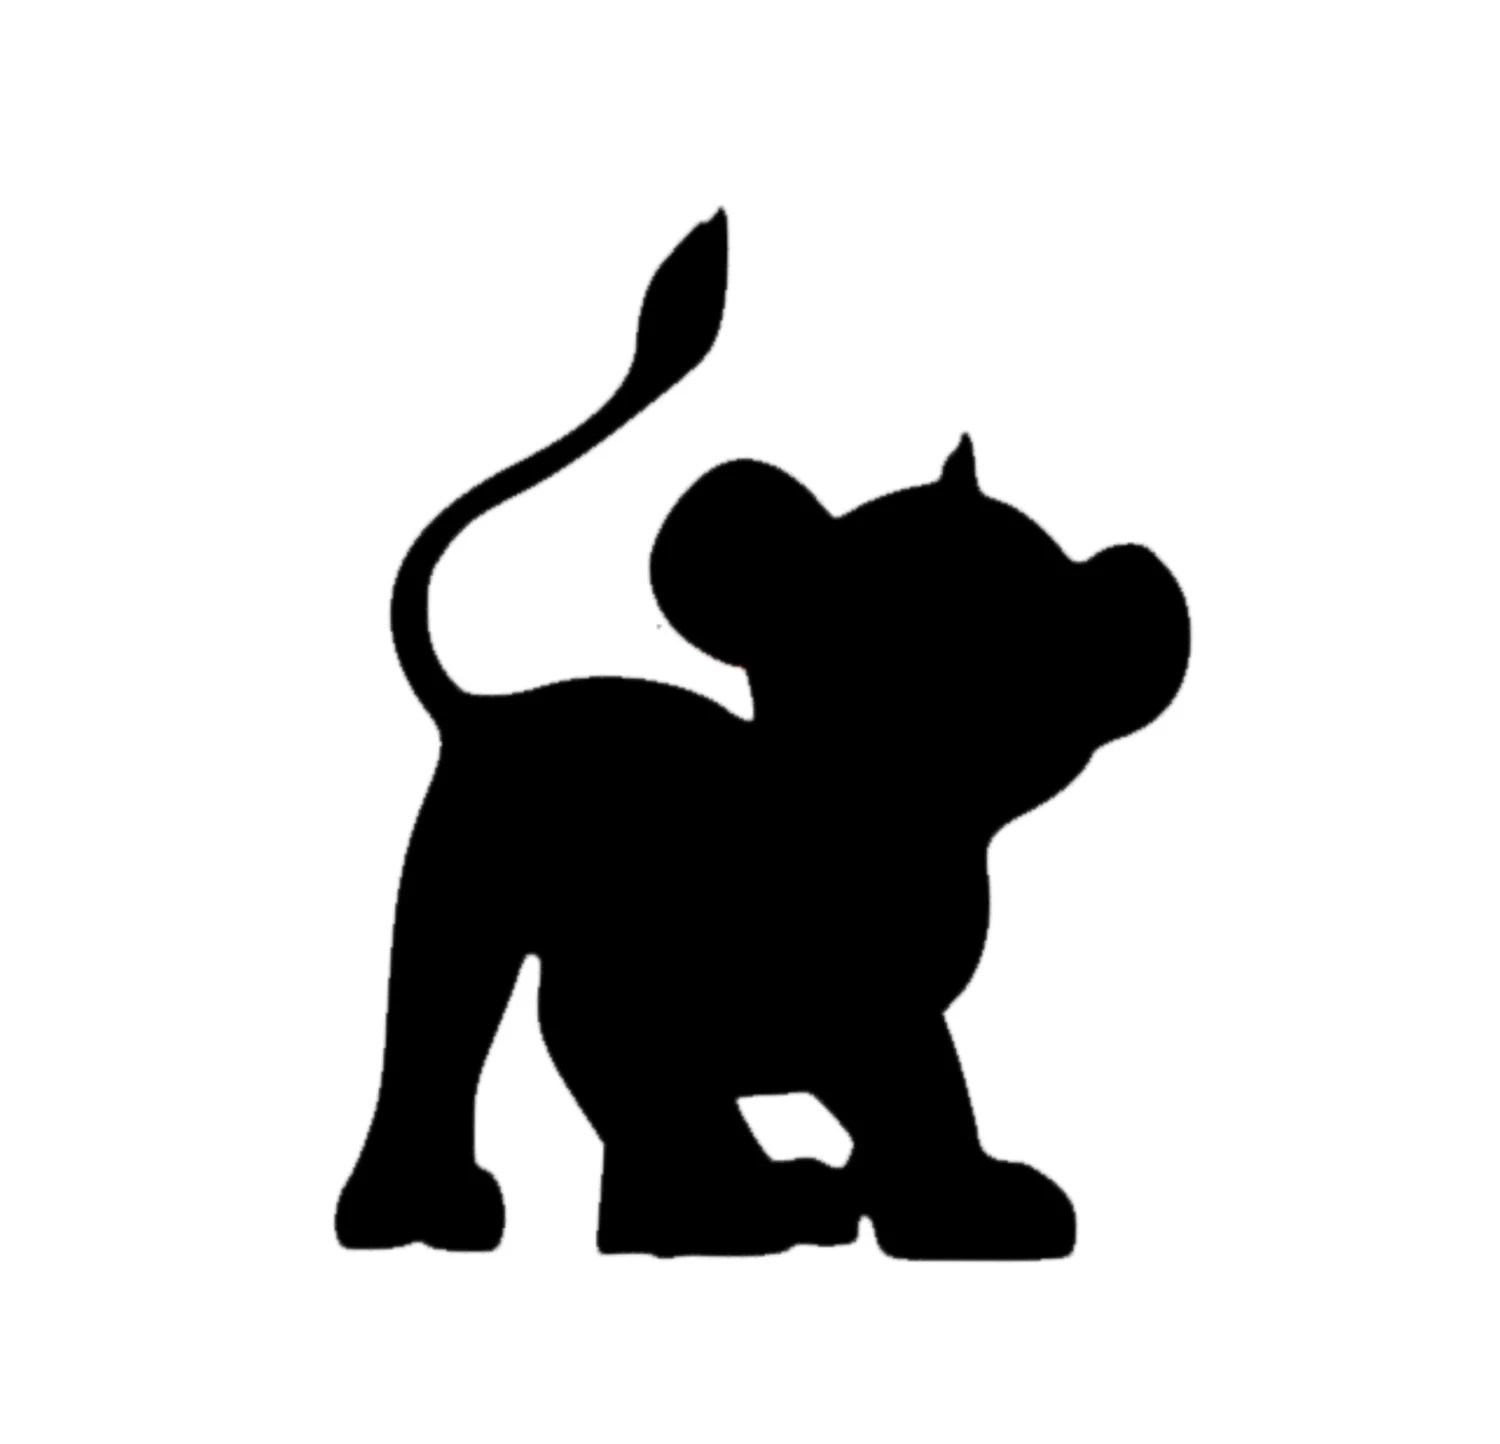 Nala Lion King Silhouette